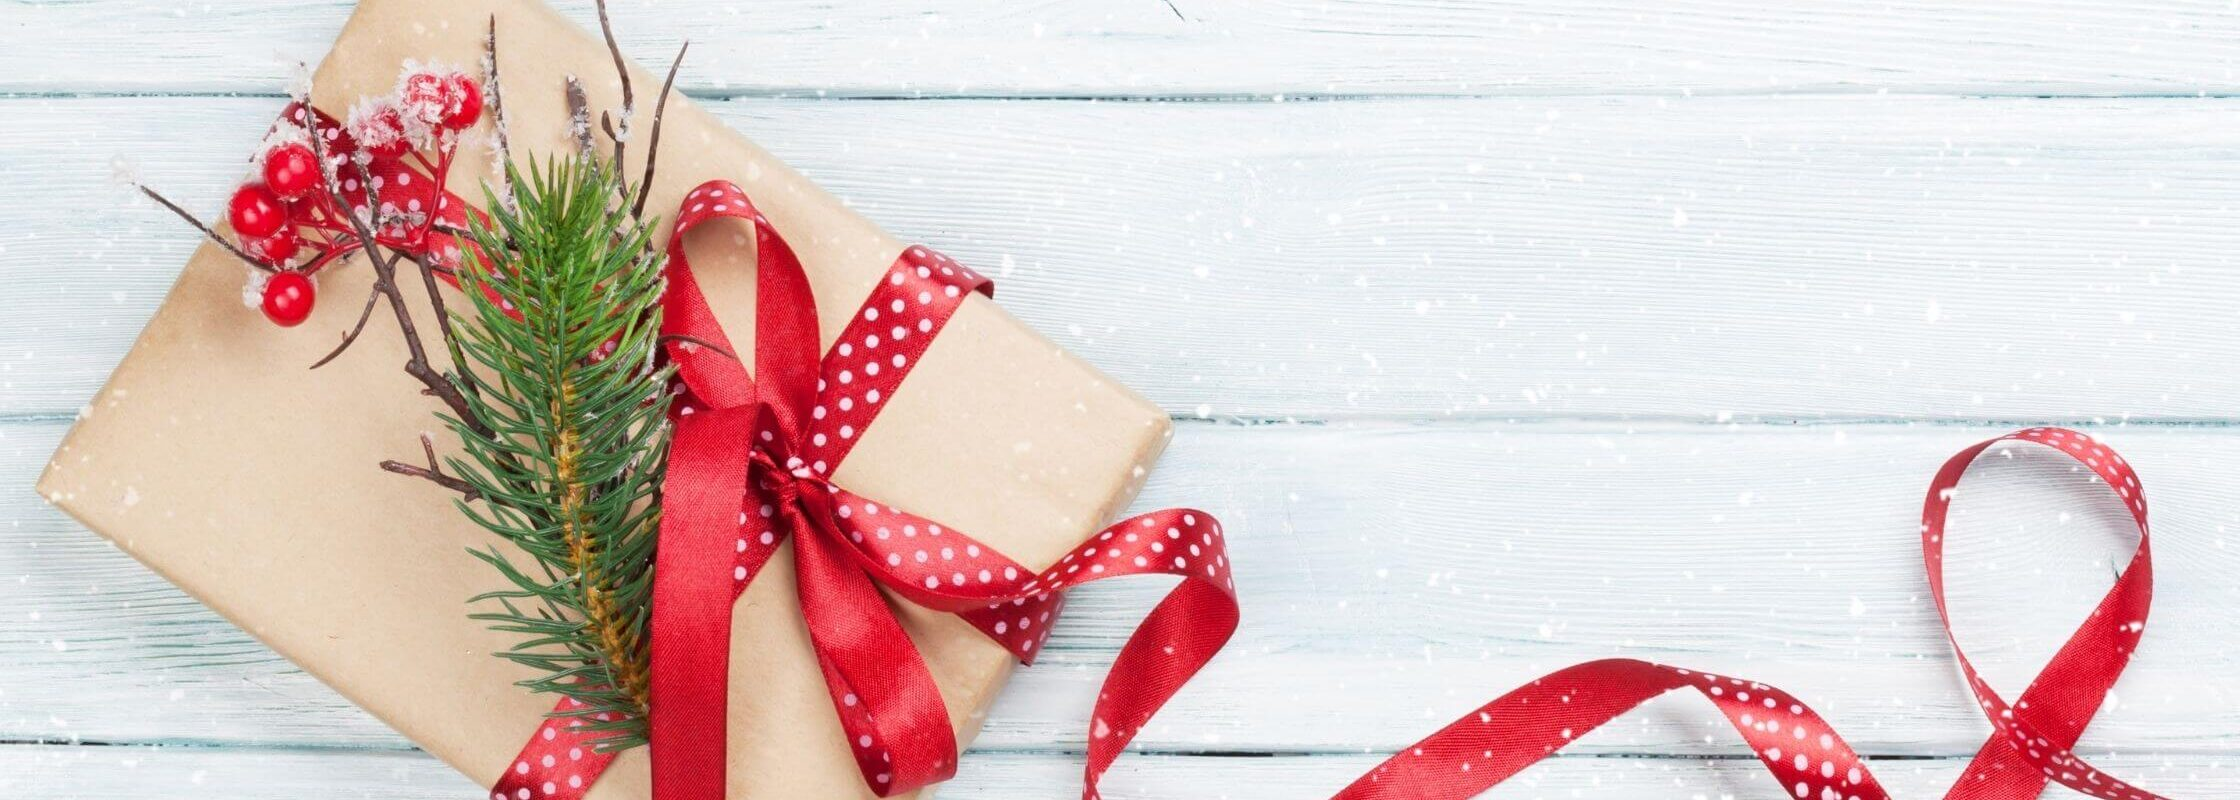 Nurture Collective Christmas Gift Guide 2020